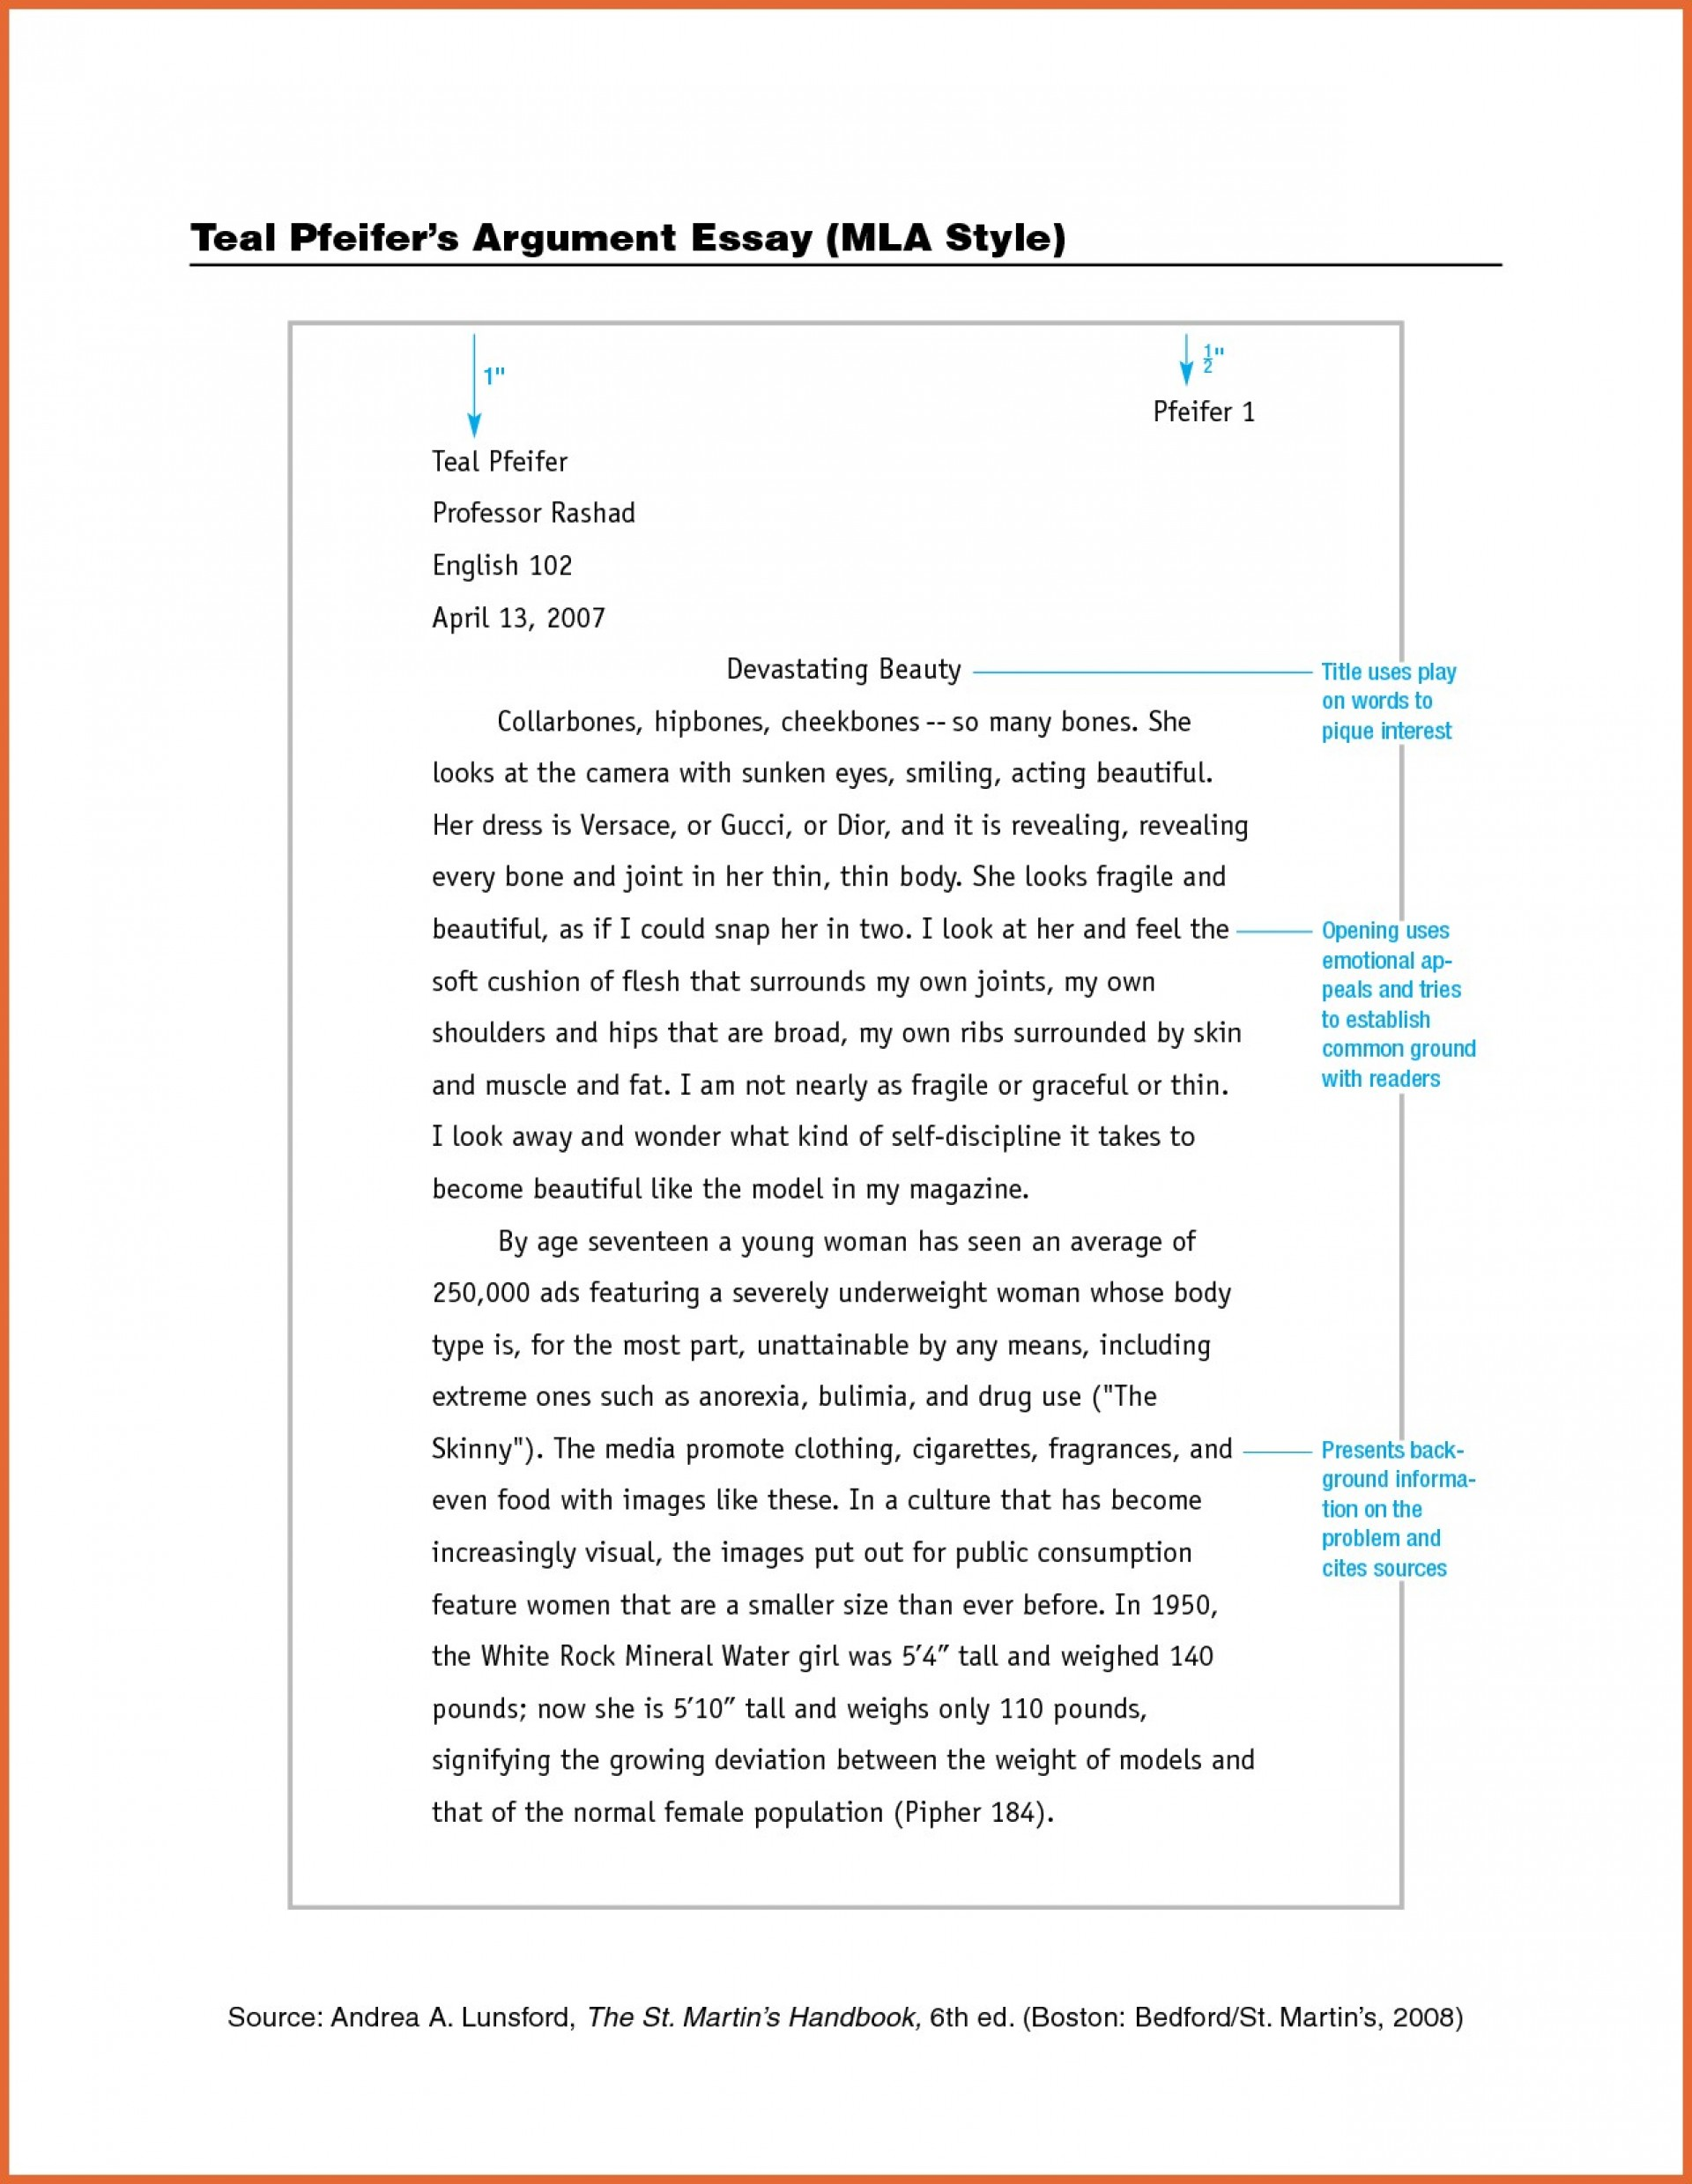 018 Mla Format Essay Title Page Fresh Of An Goal How To Your Paper In Goodwi My Style With Word Narrative Stirring Template Outline Persuasive Parenthetical Citations No Number 1920